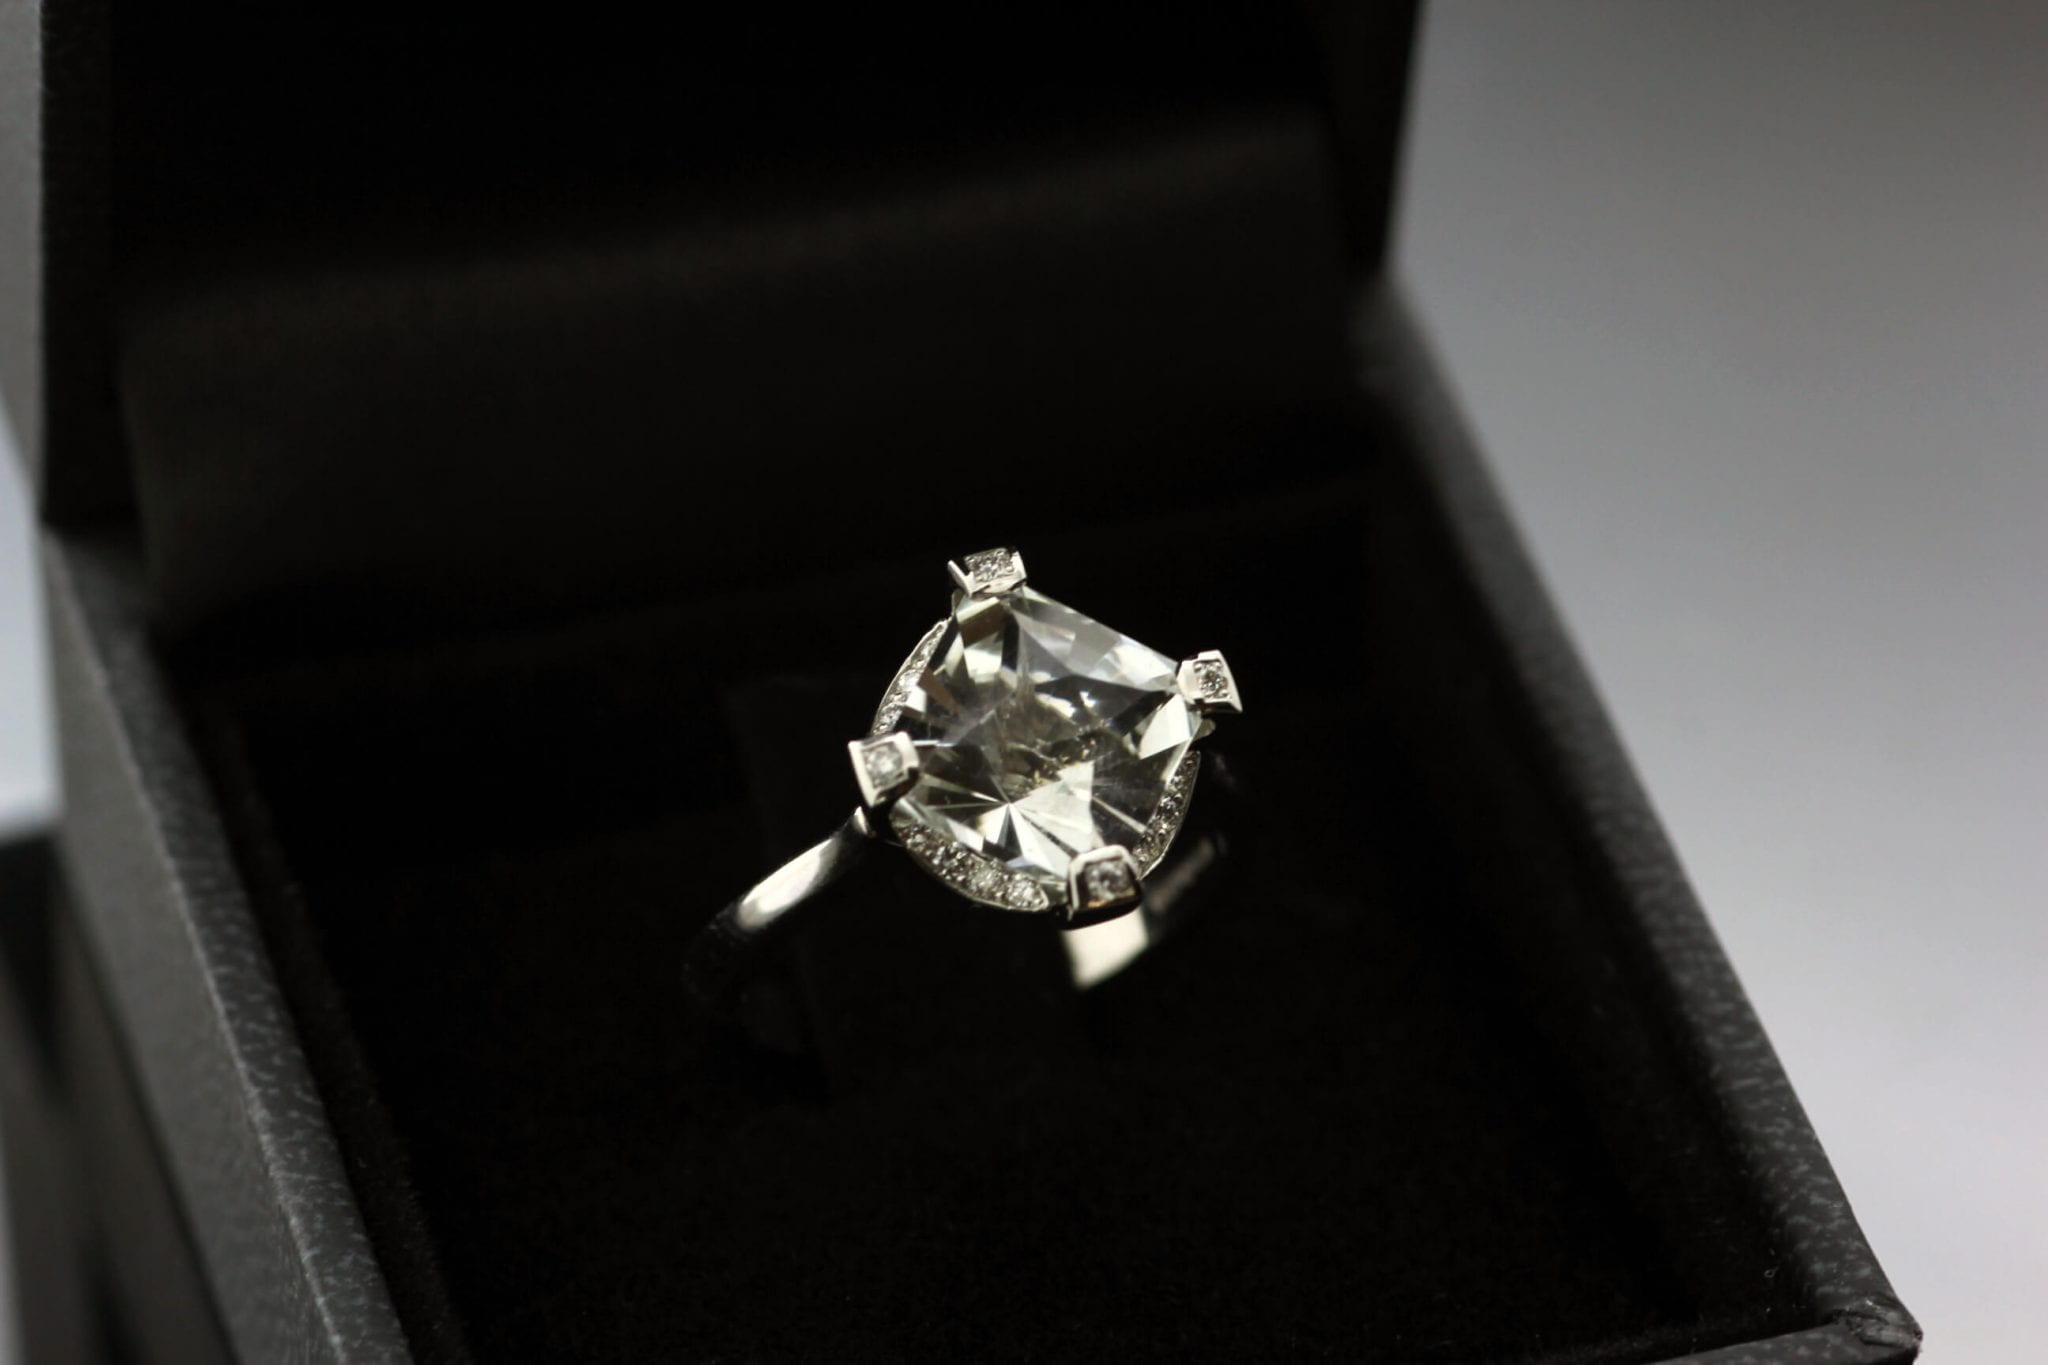 Bespoke, handcrafted Gatsby Platinum engagement ring by Julian Stephens